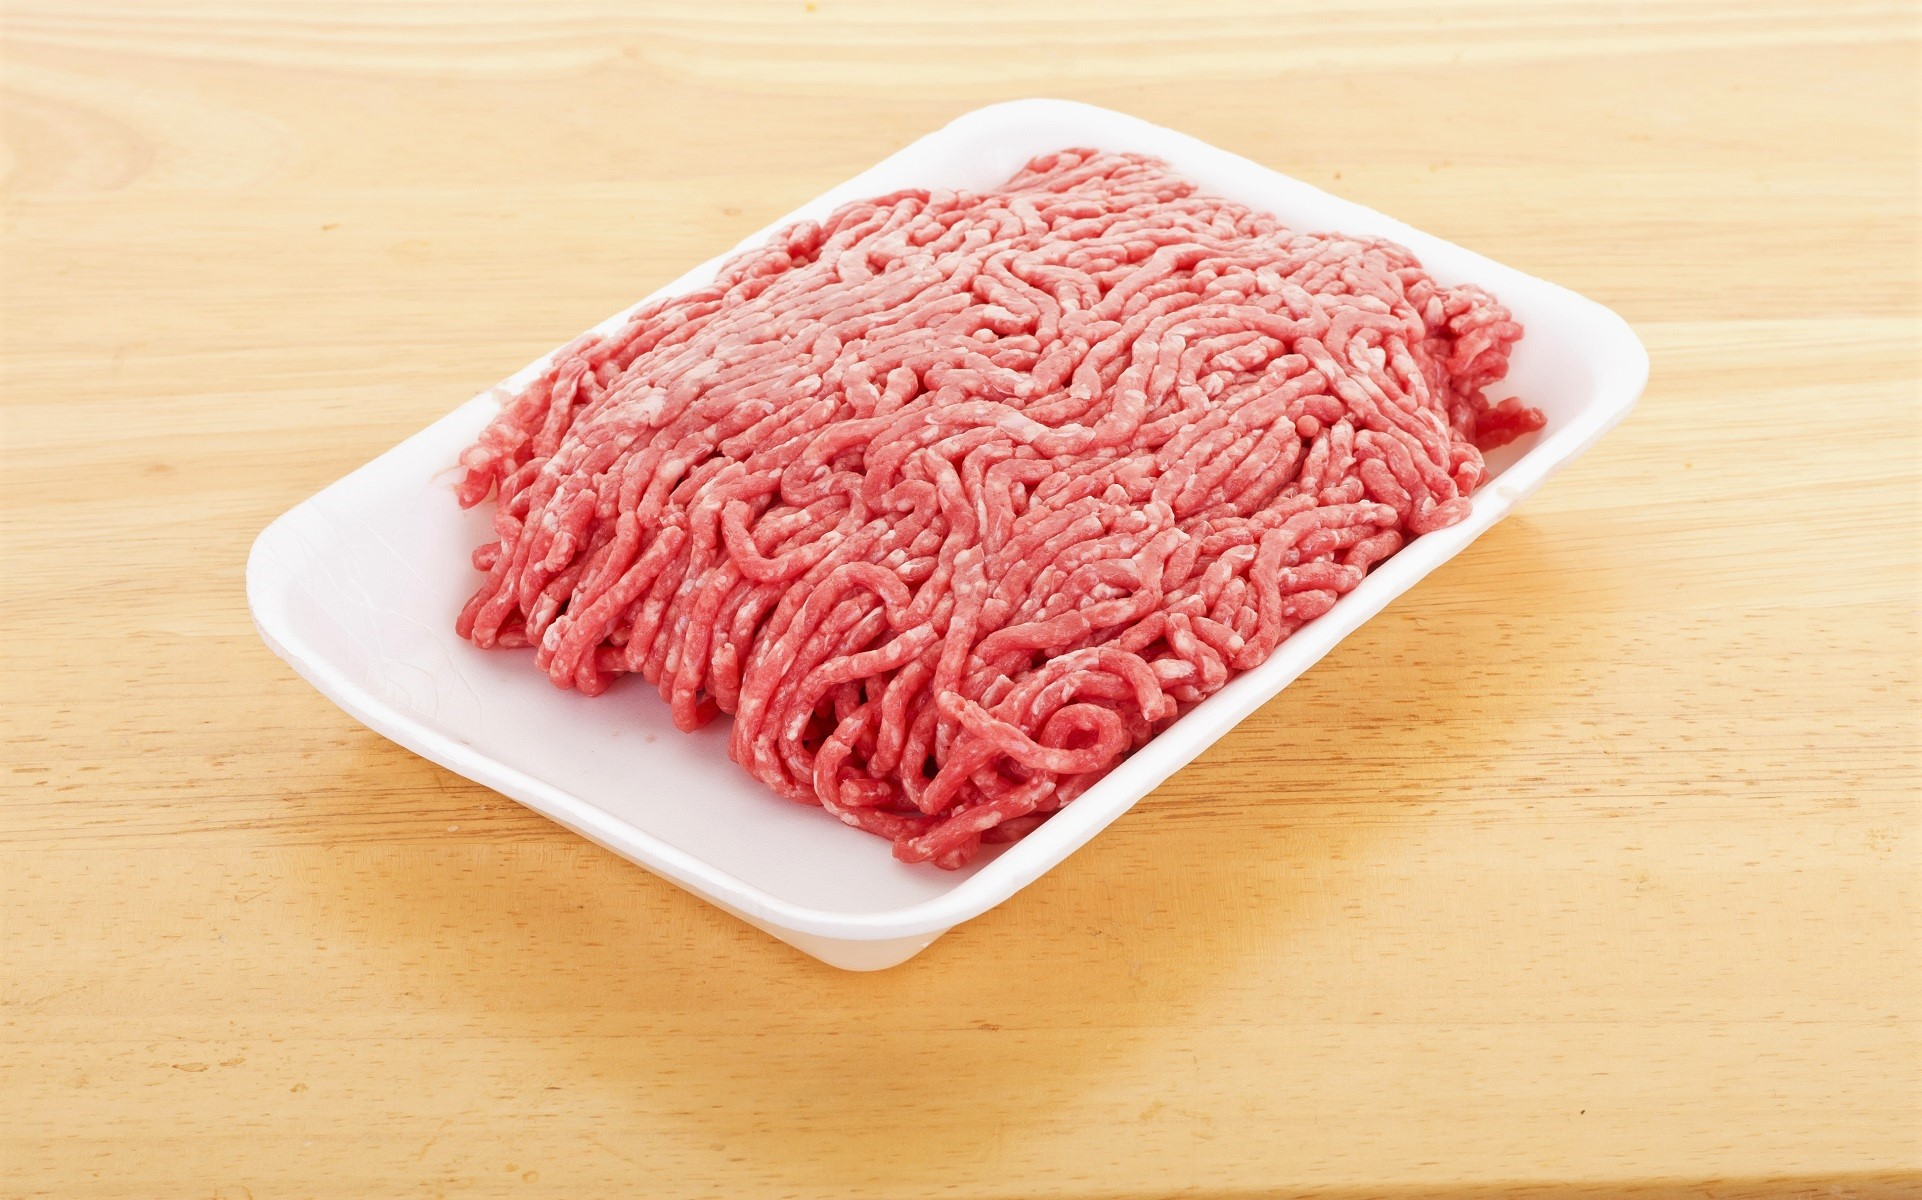 30,000 Pounds of Ground Beef Products Recalled Amid Contamination Fears